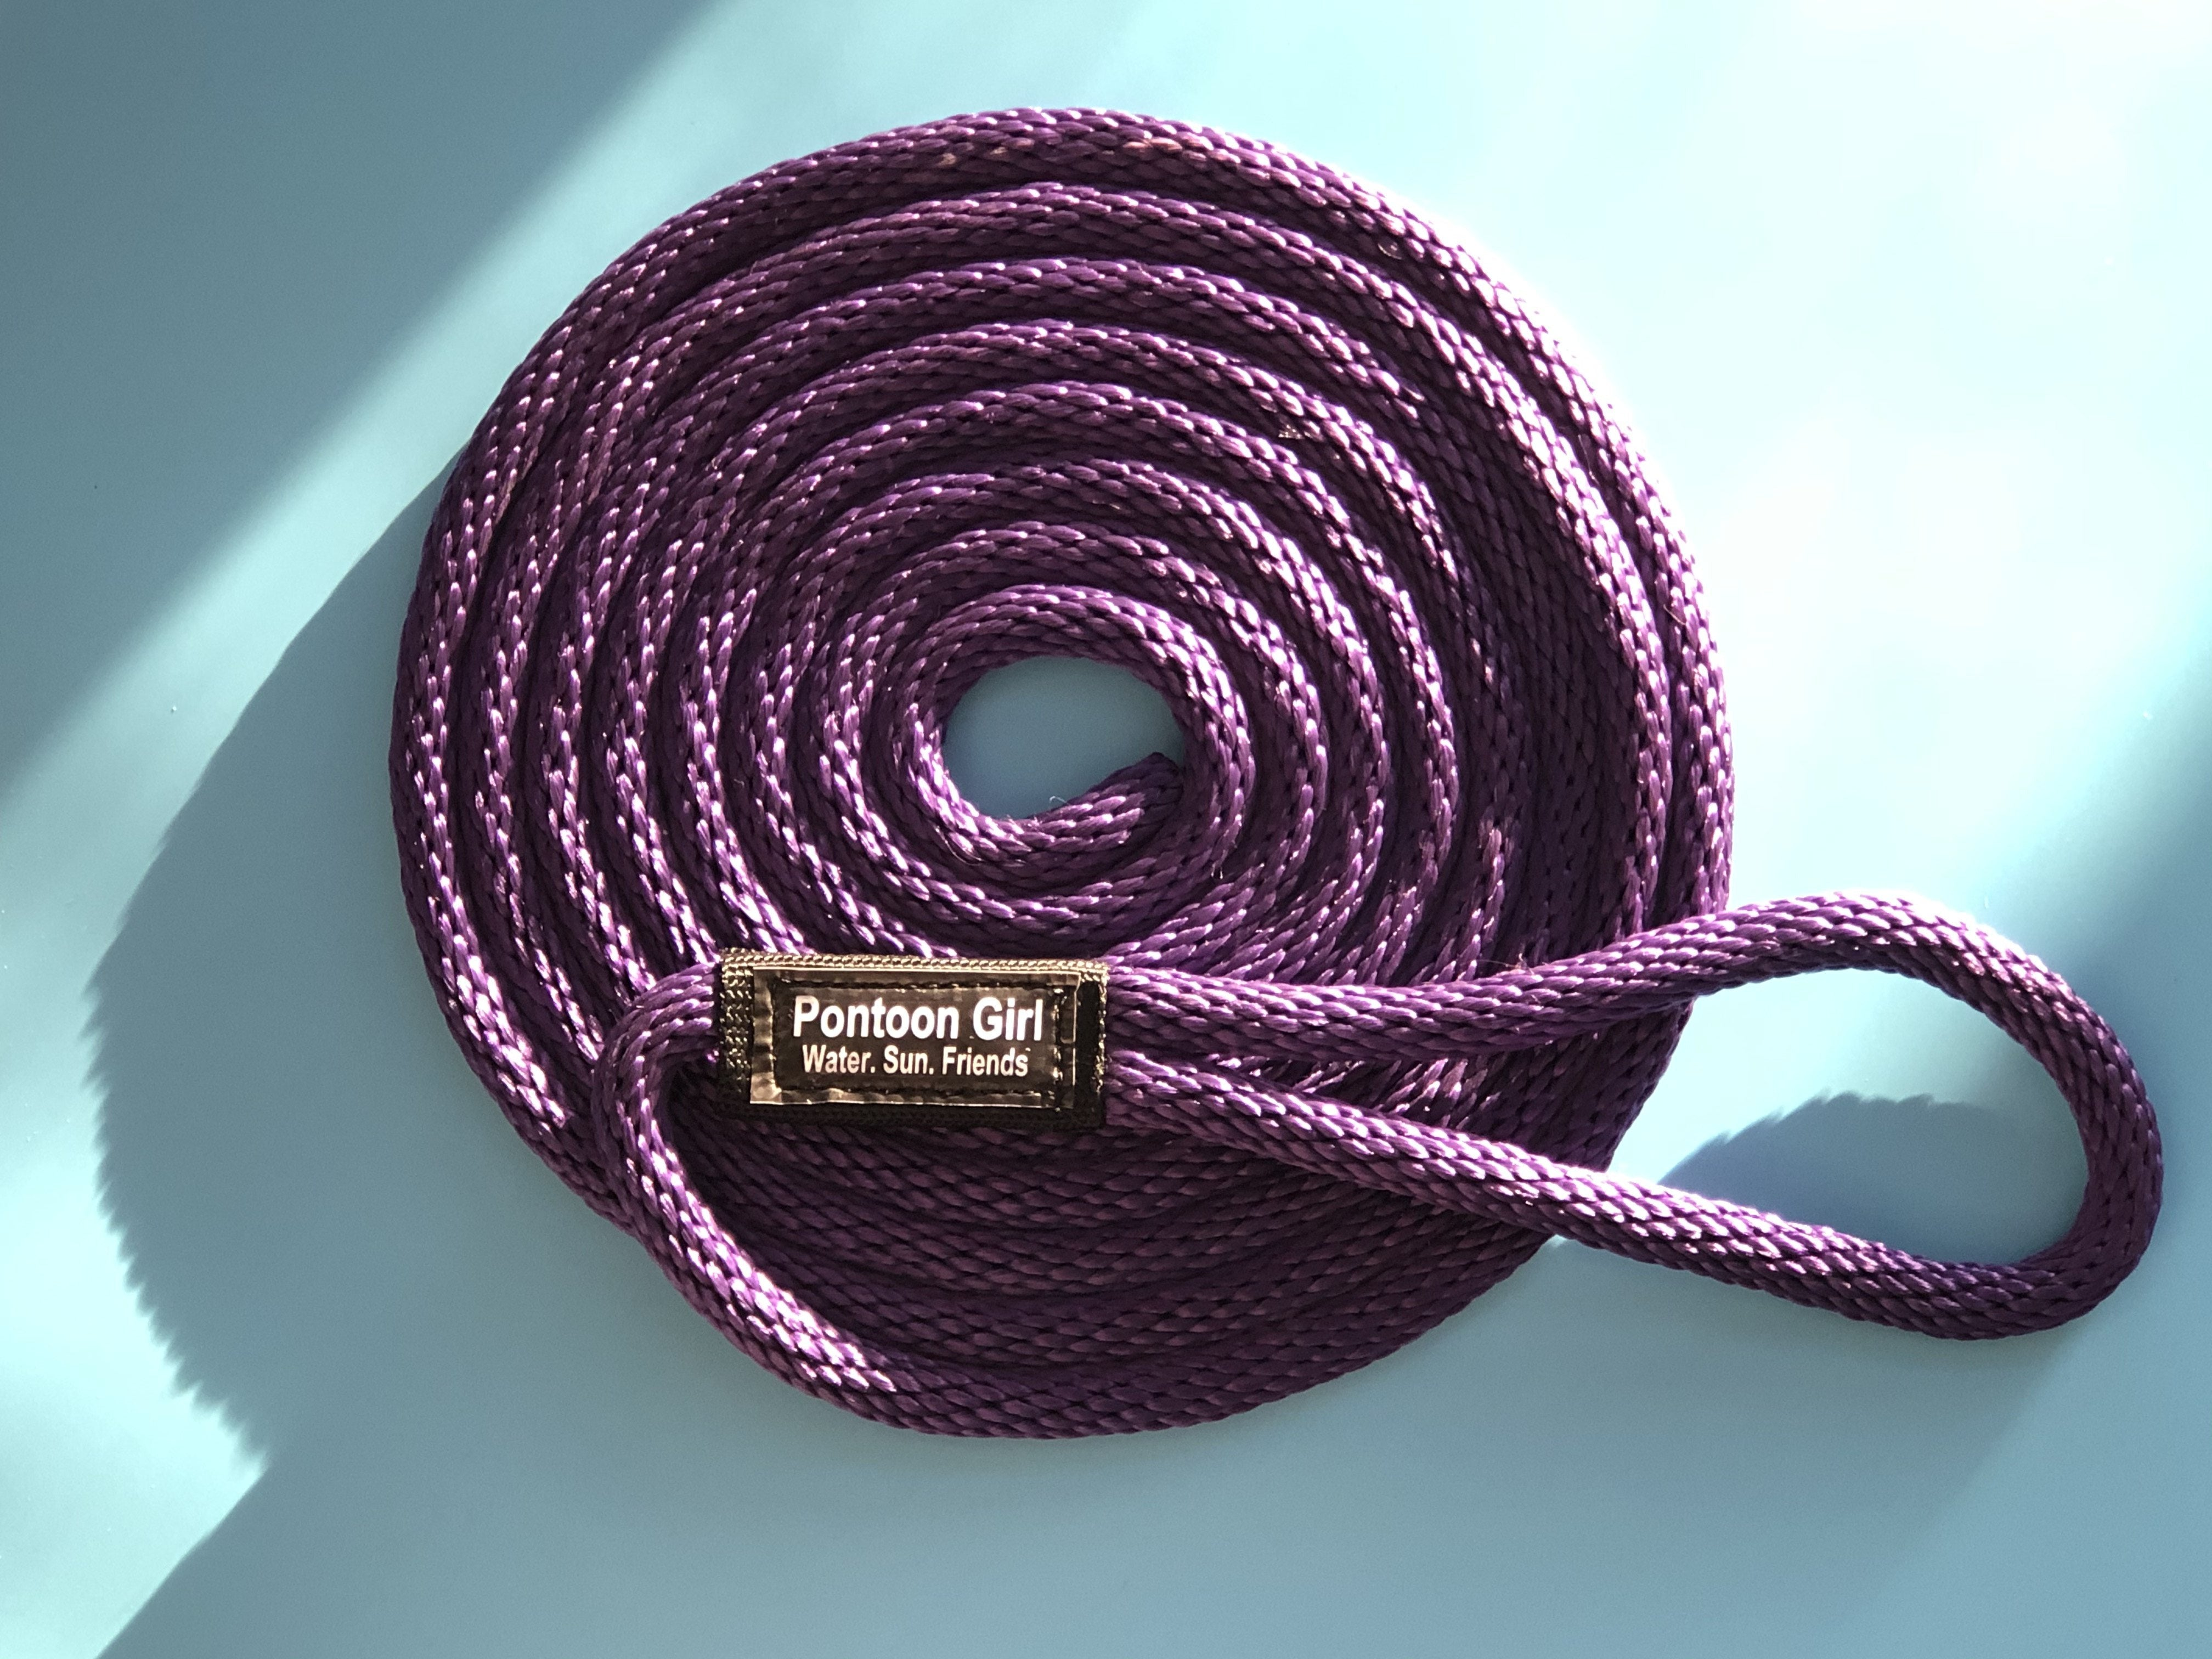 Personalized Boating Rope - Boat Tie Line - Mooring and Docking Line